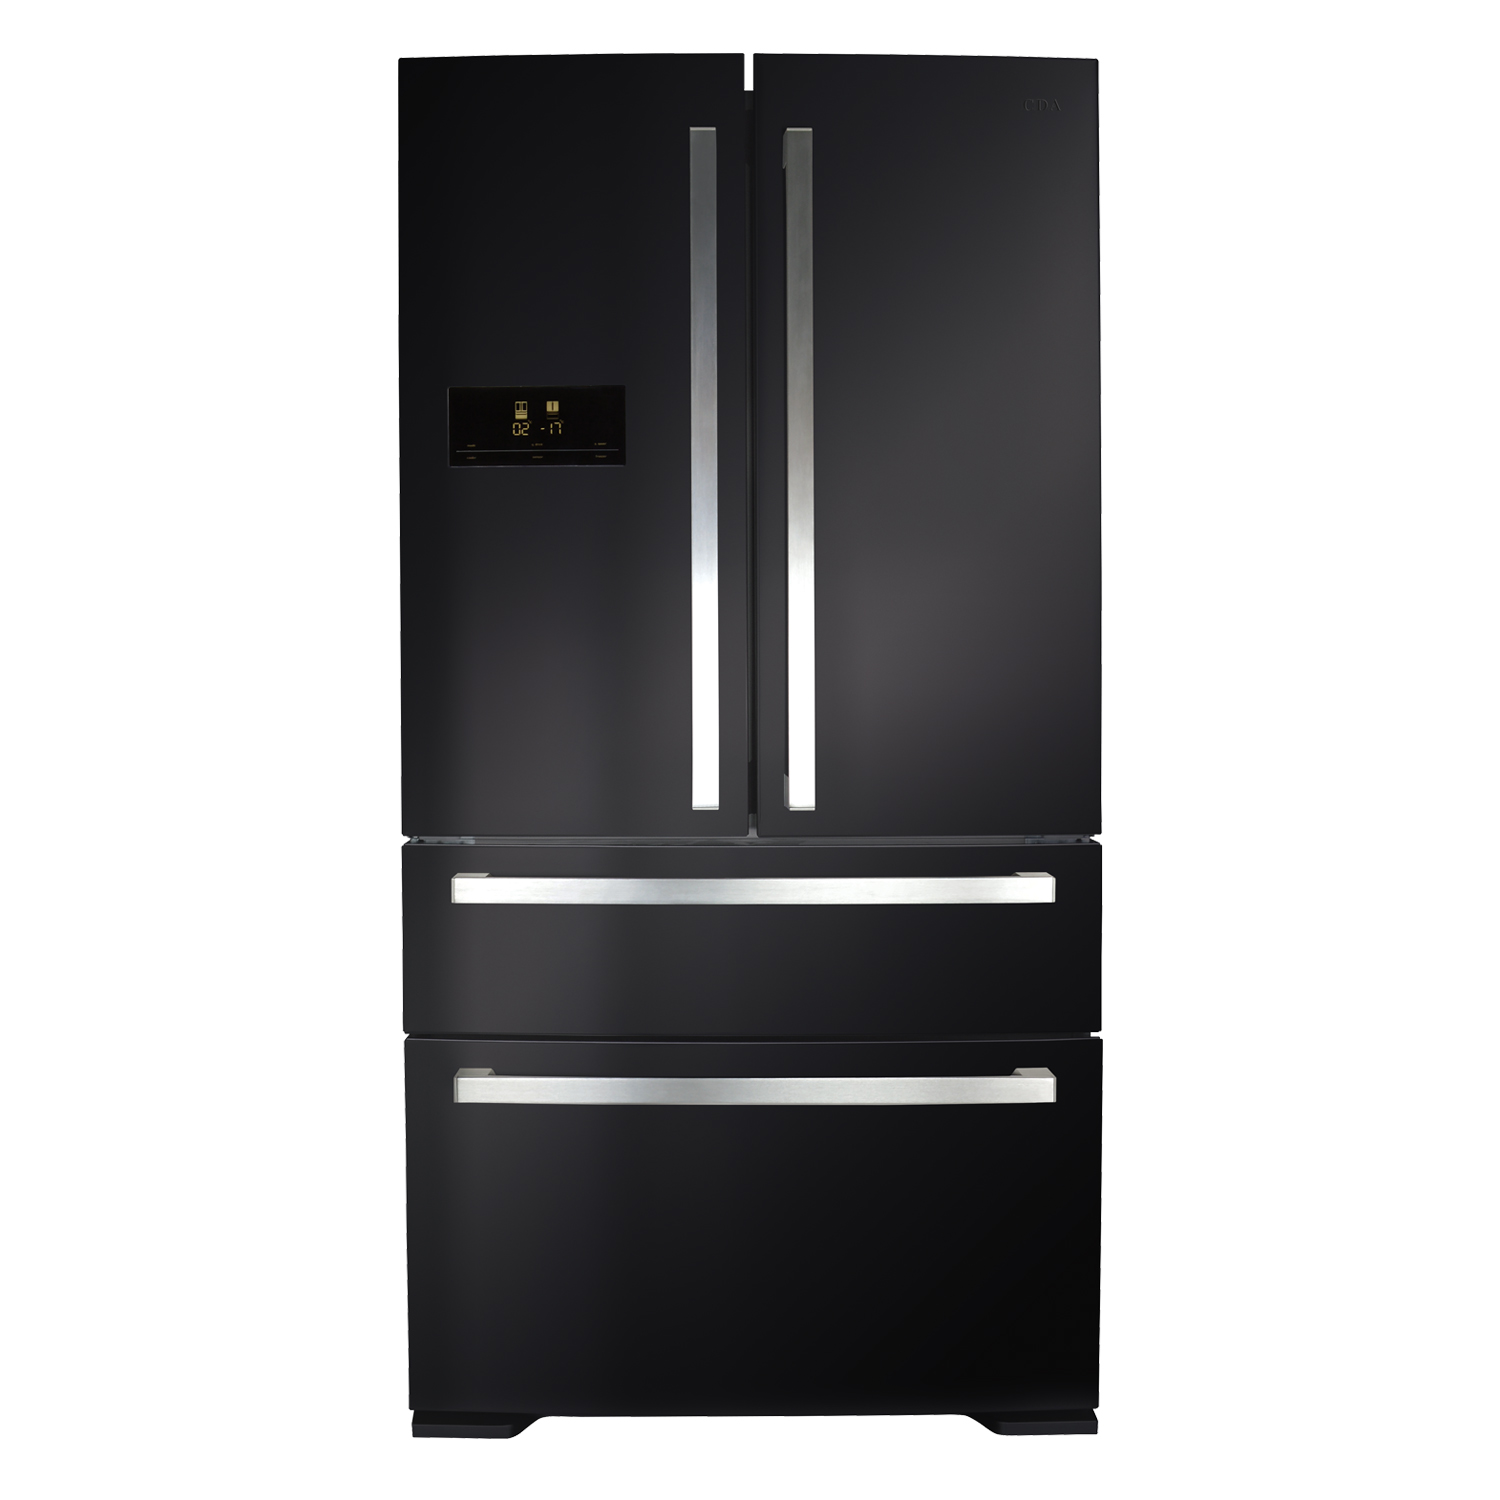 life on the refigerator door response Average life expectancy the average life expectancy for a properly maintained refrigerator is between 14 and 17 years, depending on model and size.